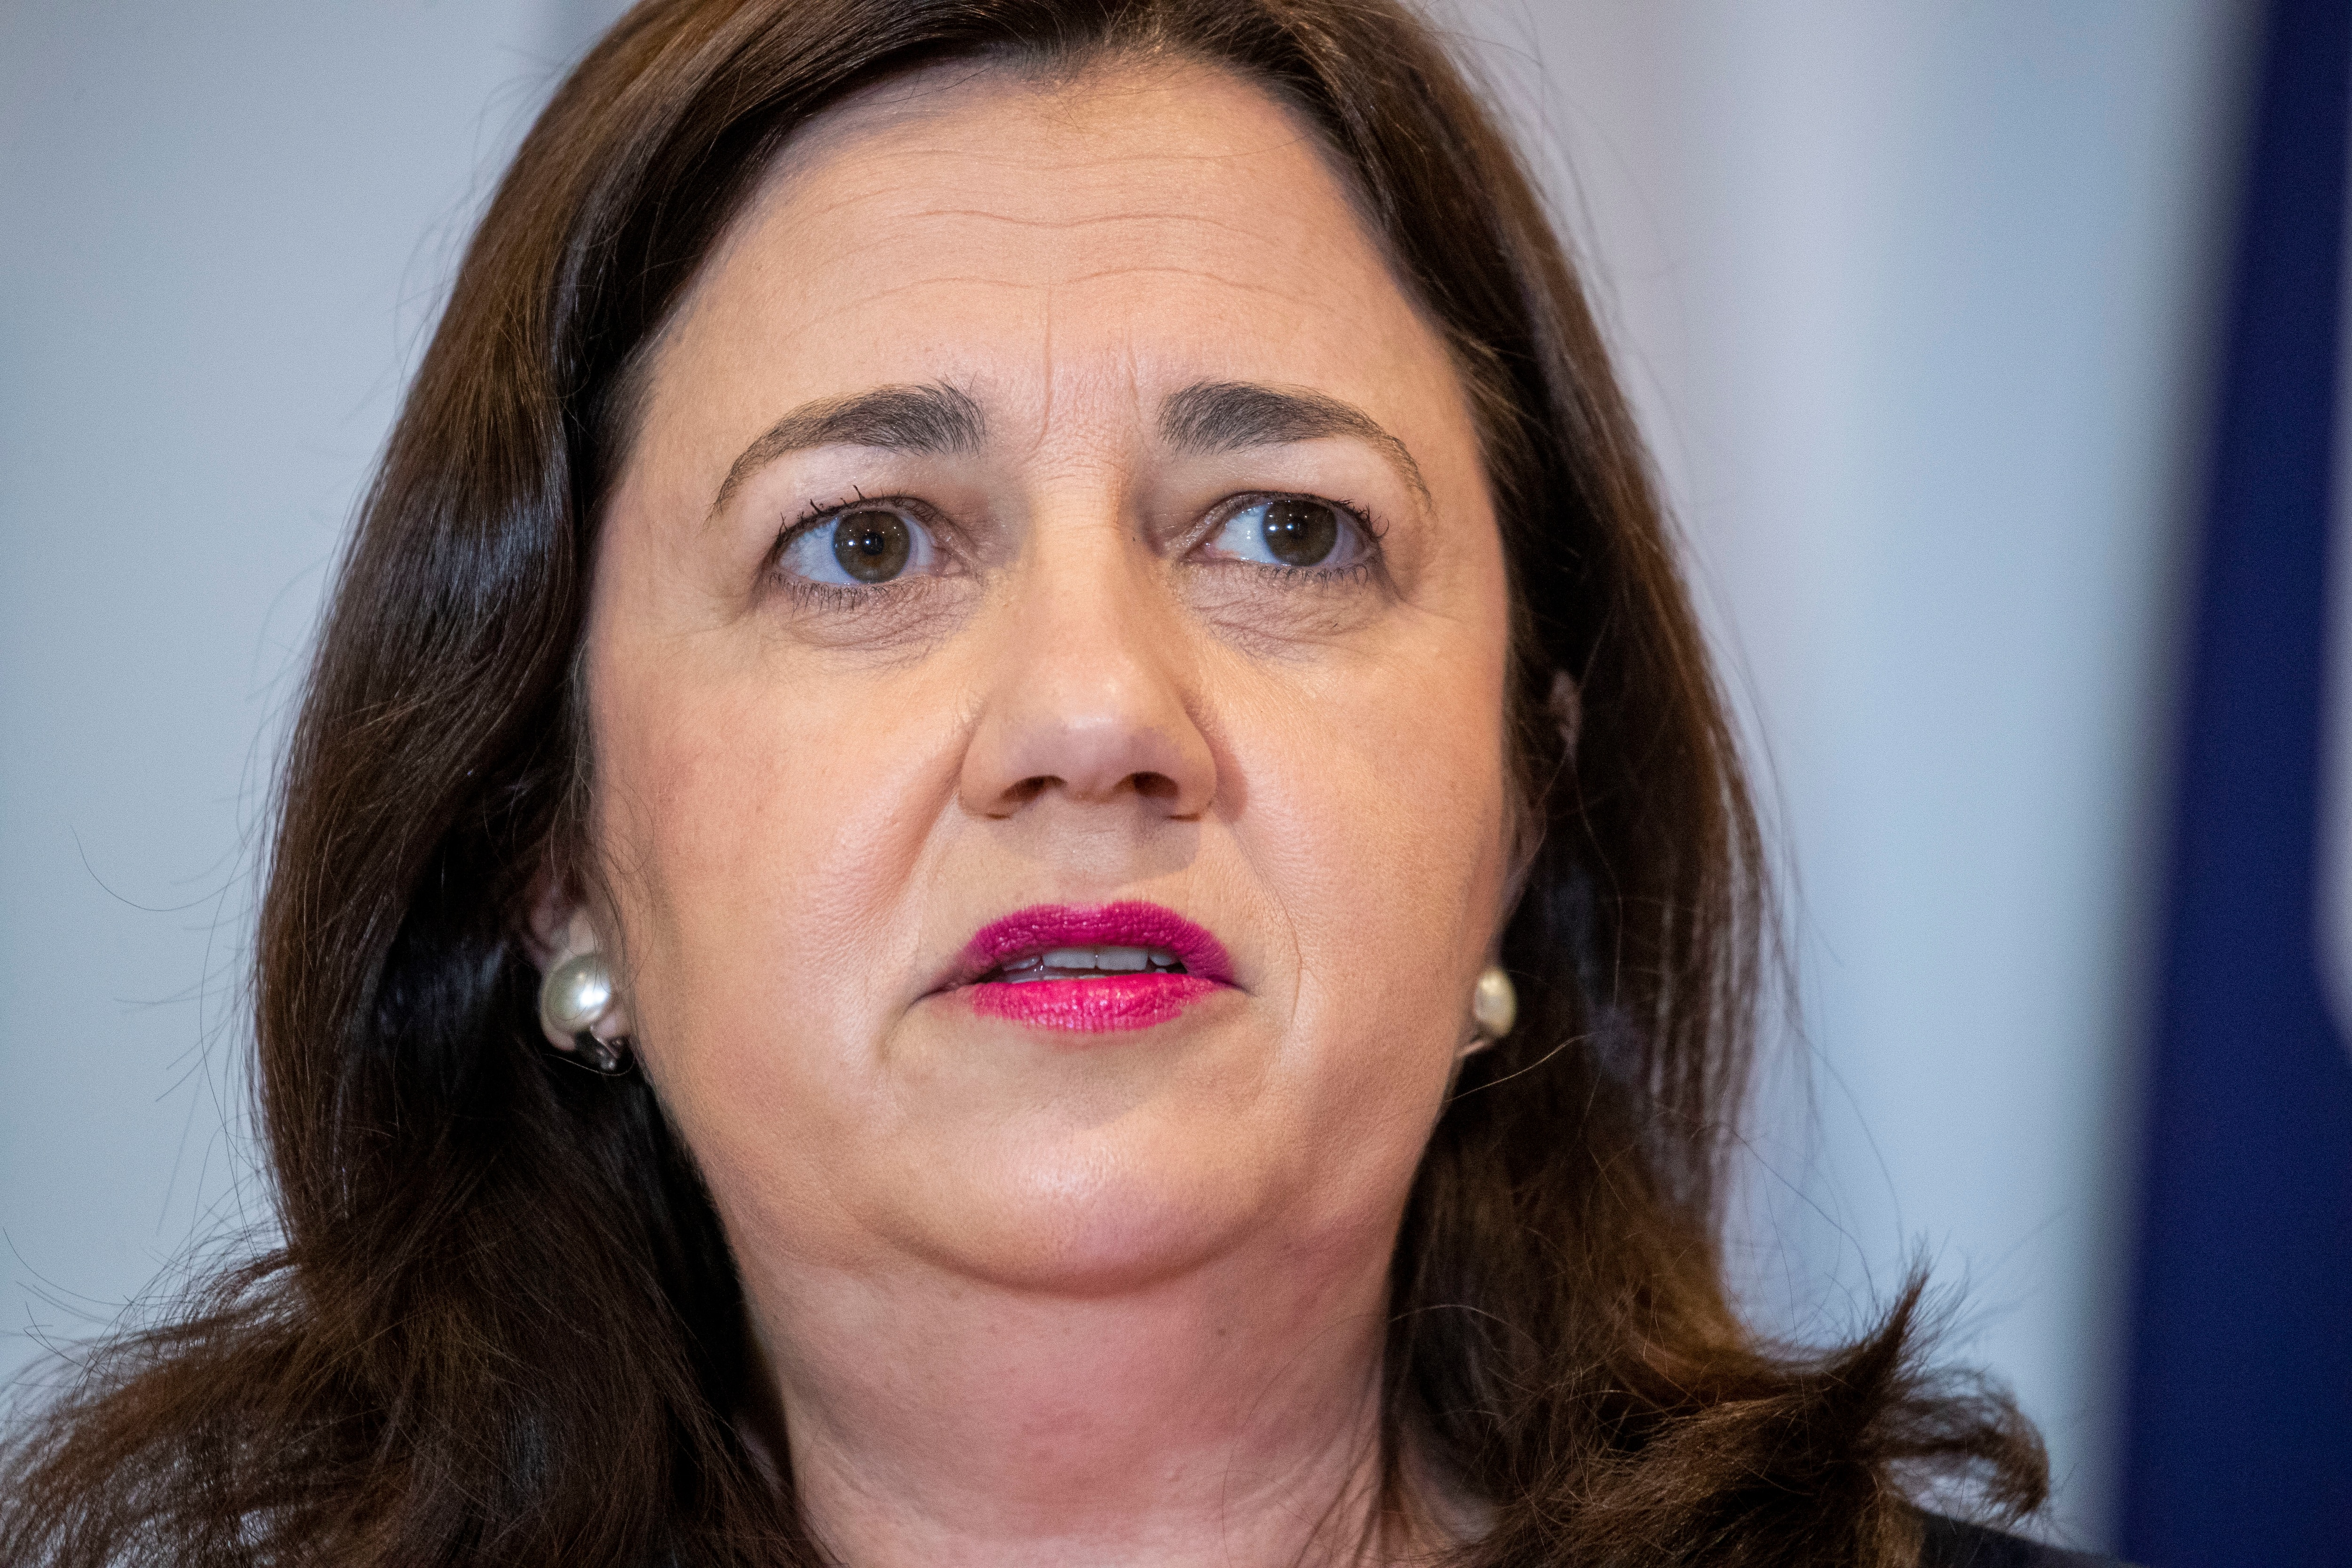 Queensland Premier Annastacia Palaszczuk urges travellers to delay plans if possible.